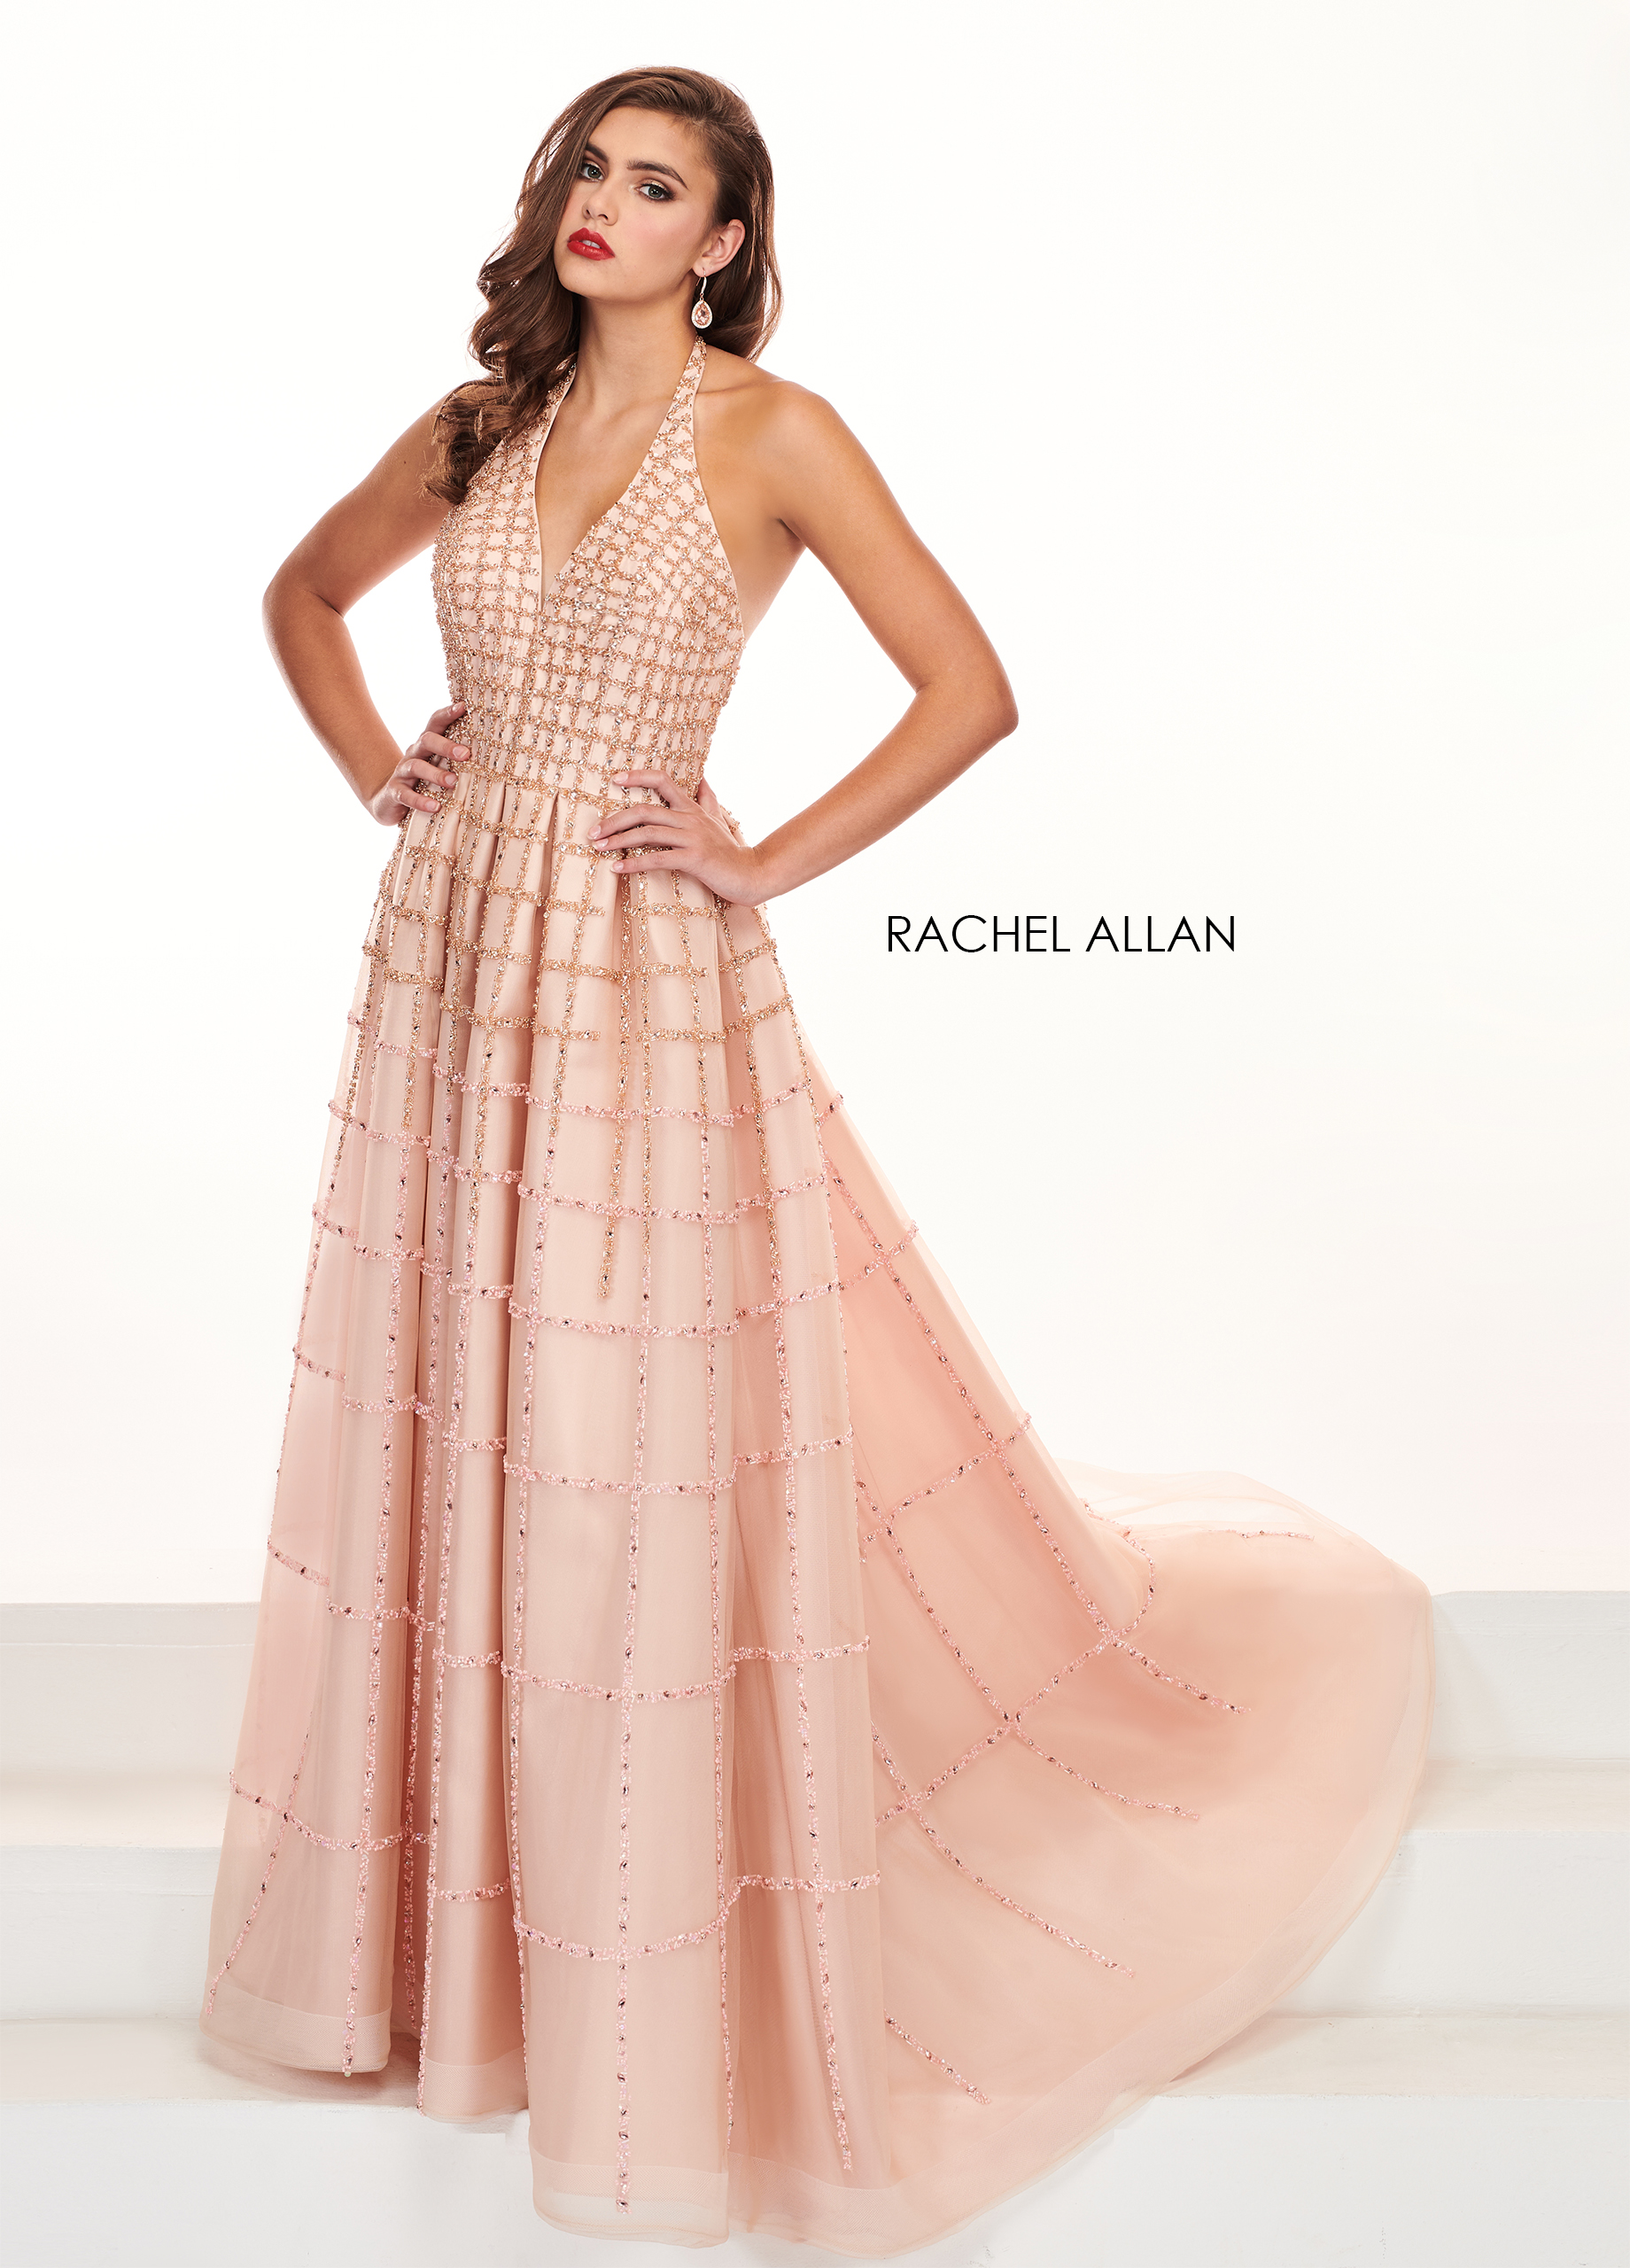 Halter A-Line Pageant Dresses in Pink Color